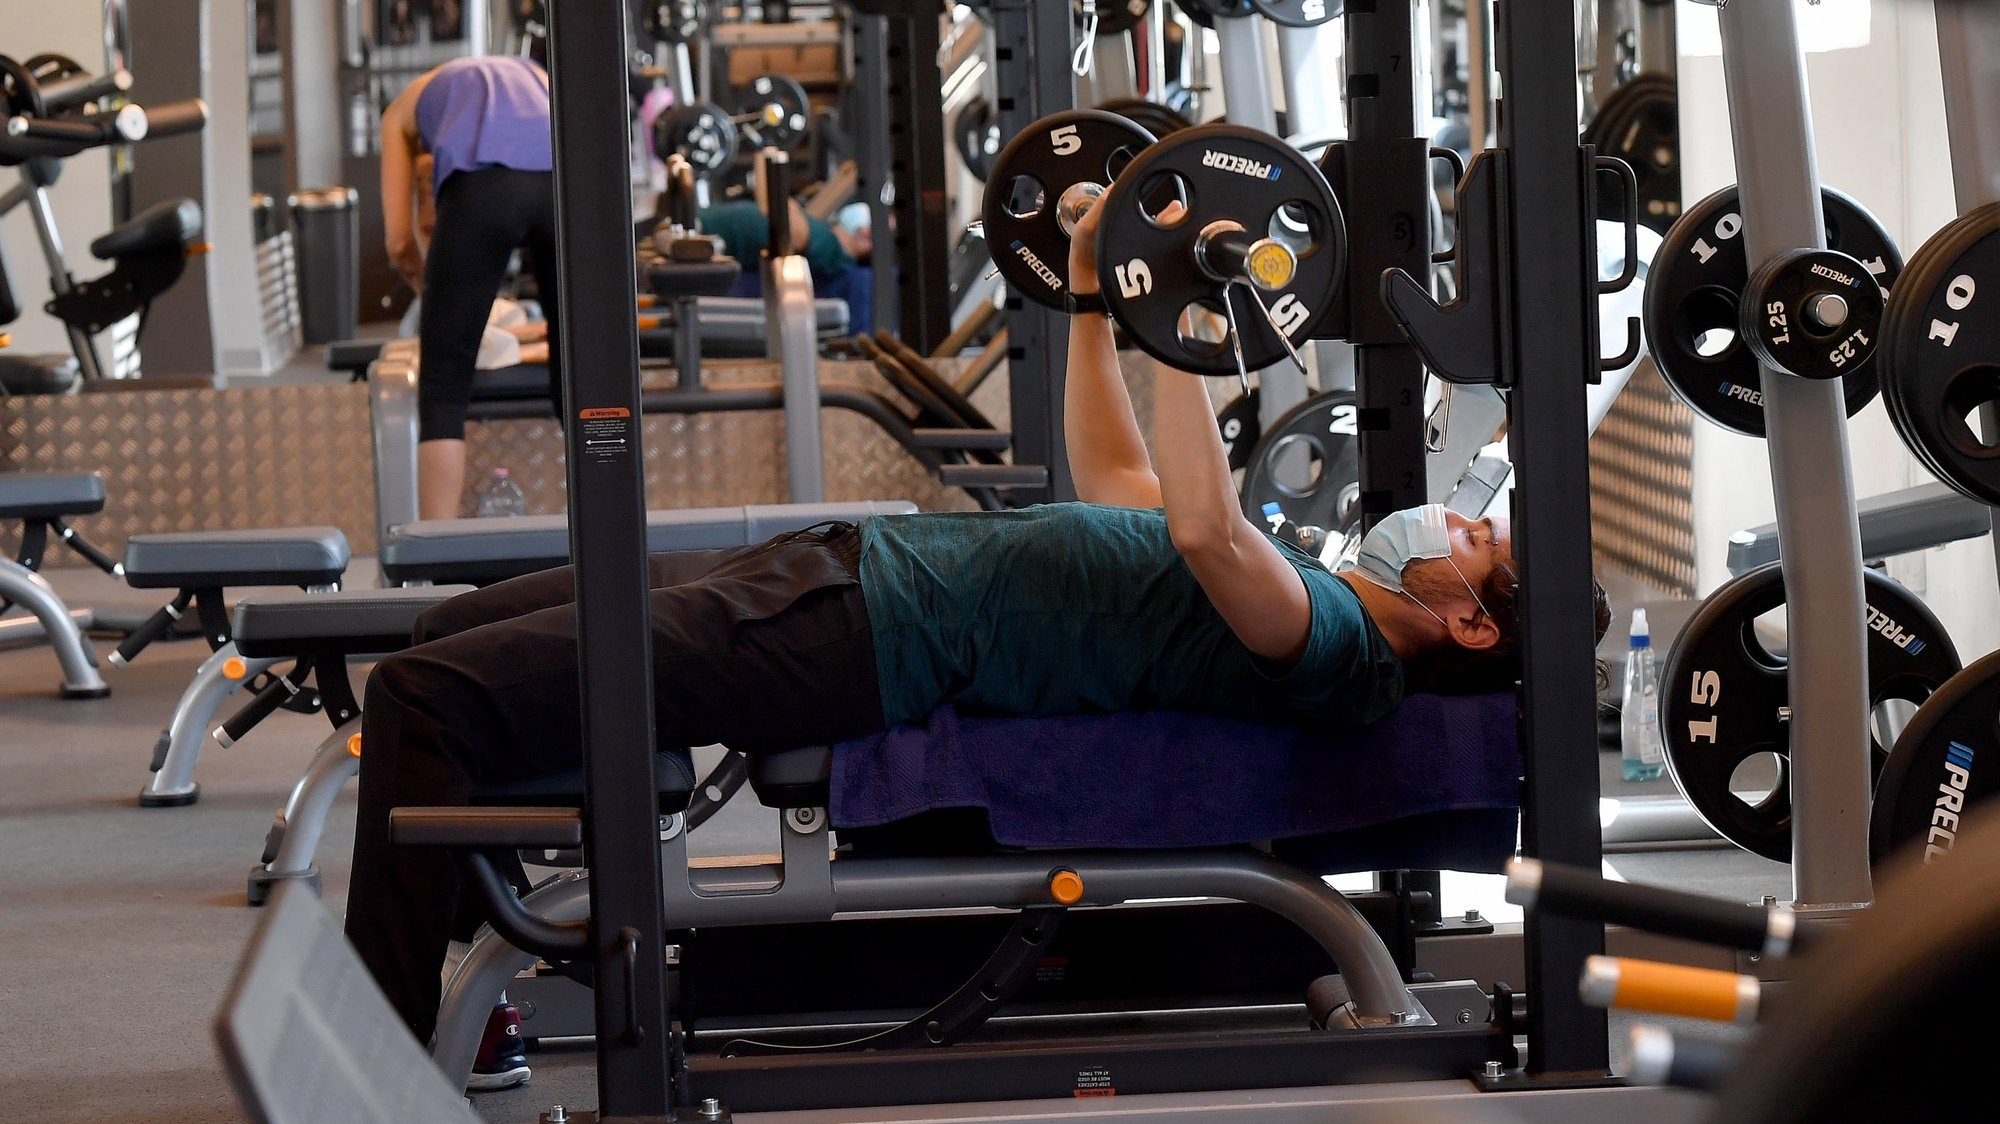 epa08443370 People work out at the Anytime Fitness Gym in Rome, Italy, 25 May 2020. Gyms and swimming pools reopen in Italy during phase two of the coronavirus emergency.  EPA/ETTORE FERRARI